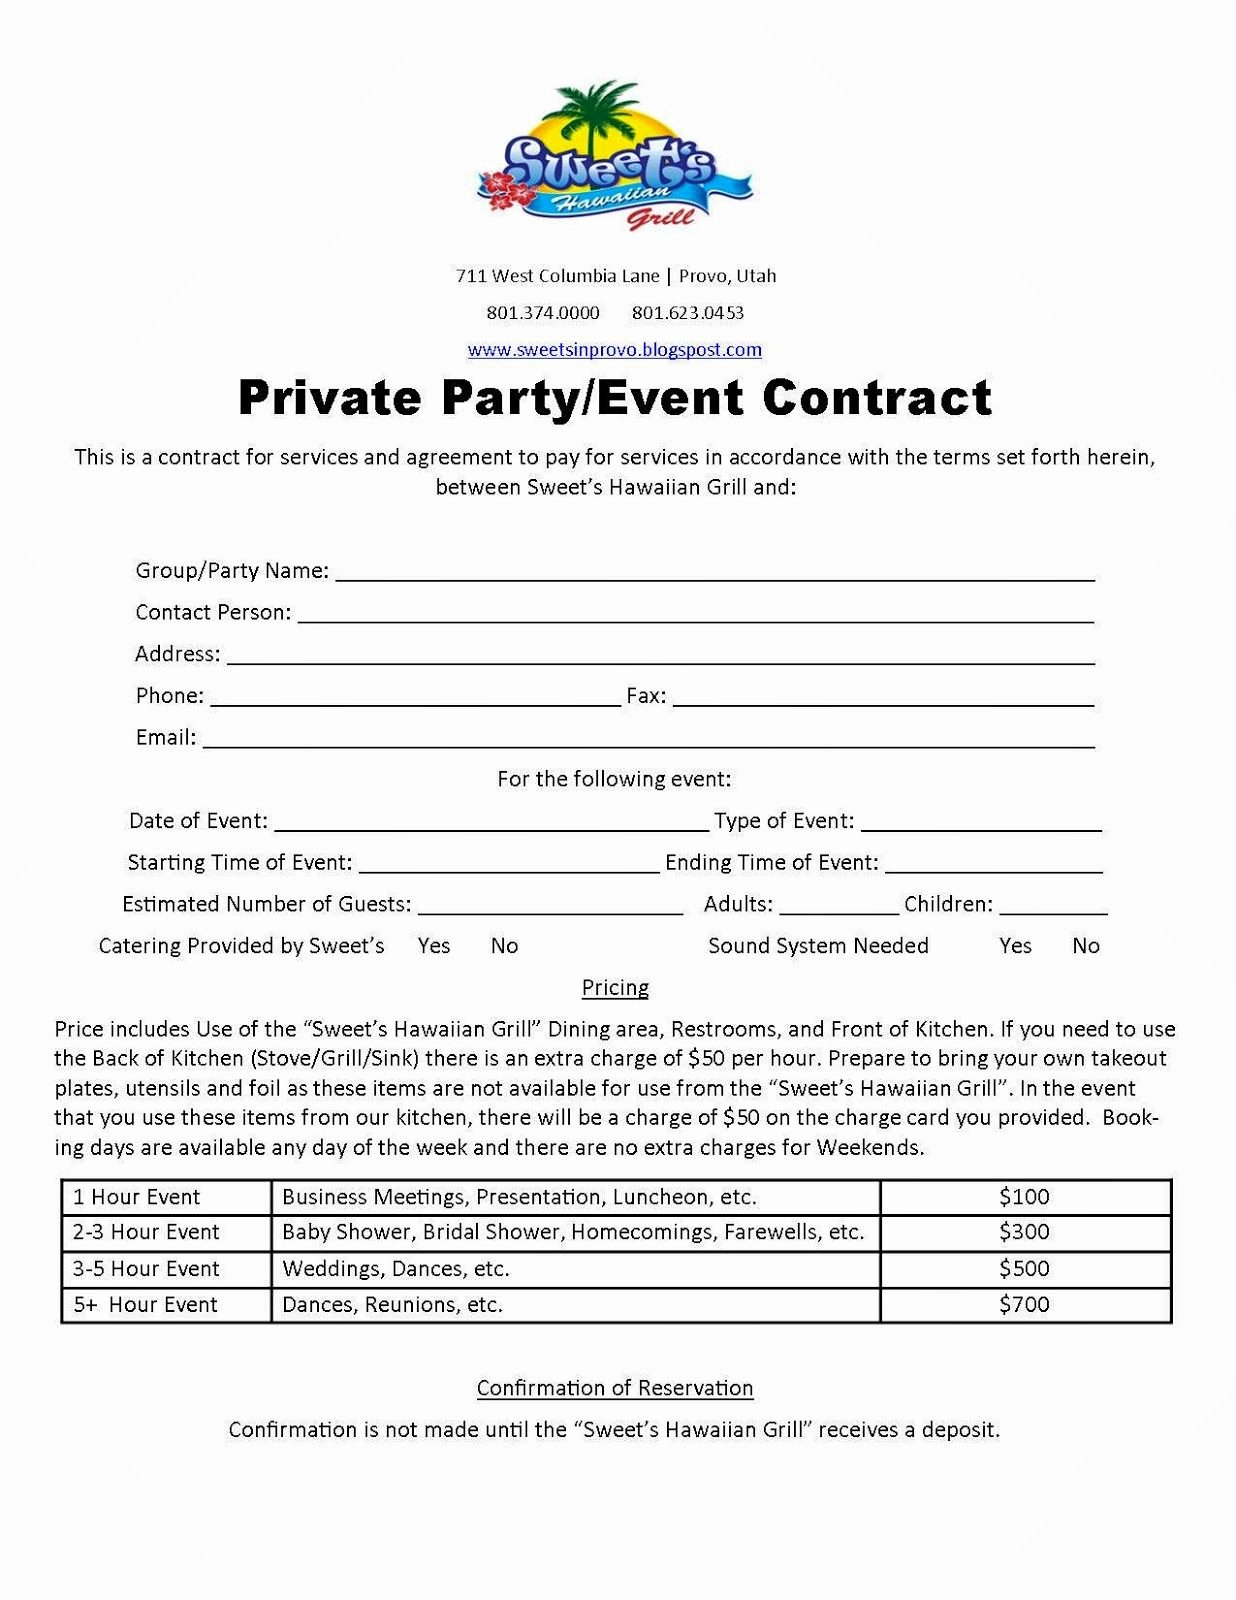 Wedding Planners Contract Template Unique Party Planner Contract Template Google Search